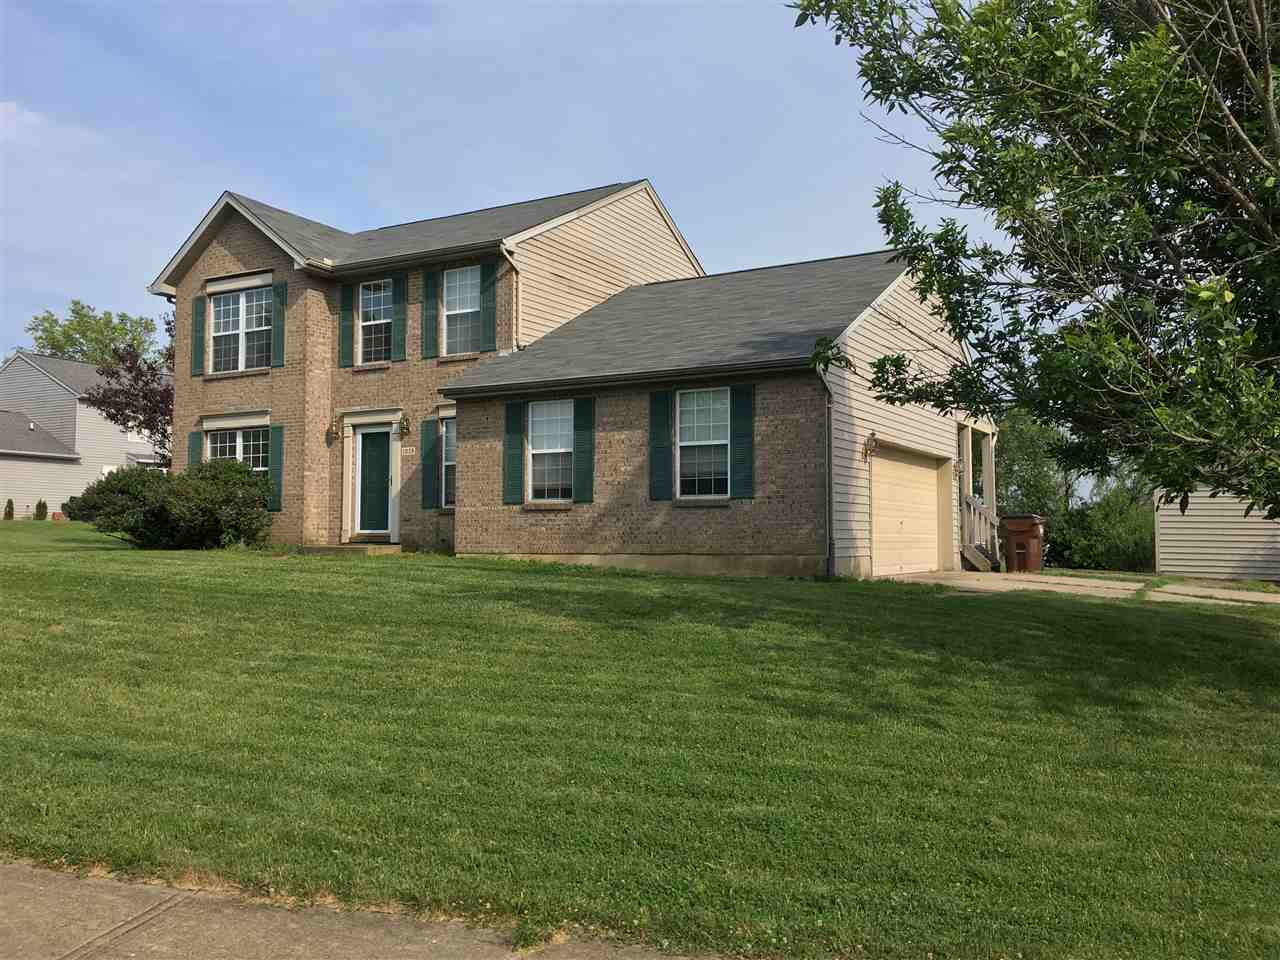 Photo 1 for 1039 Falcon Ct Independence, KY 41051